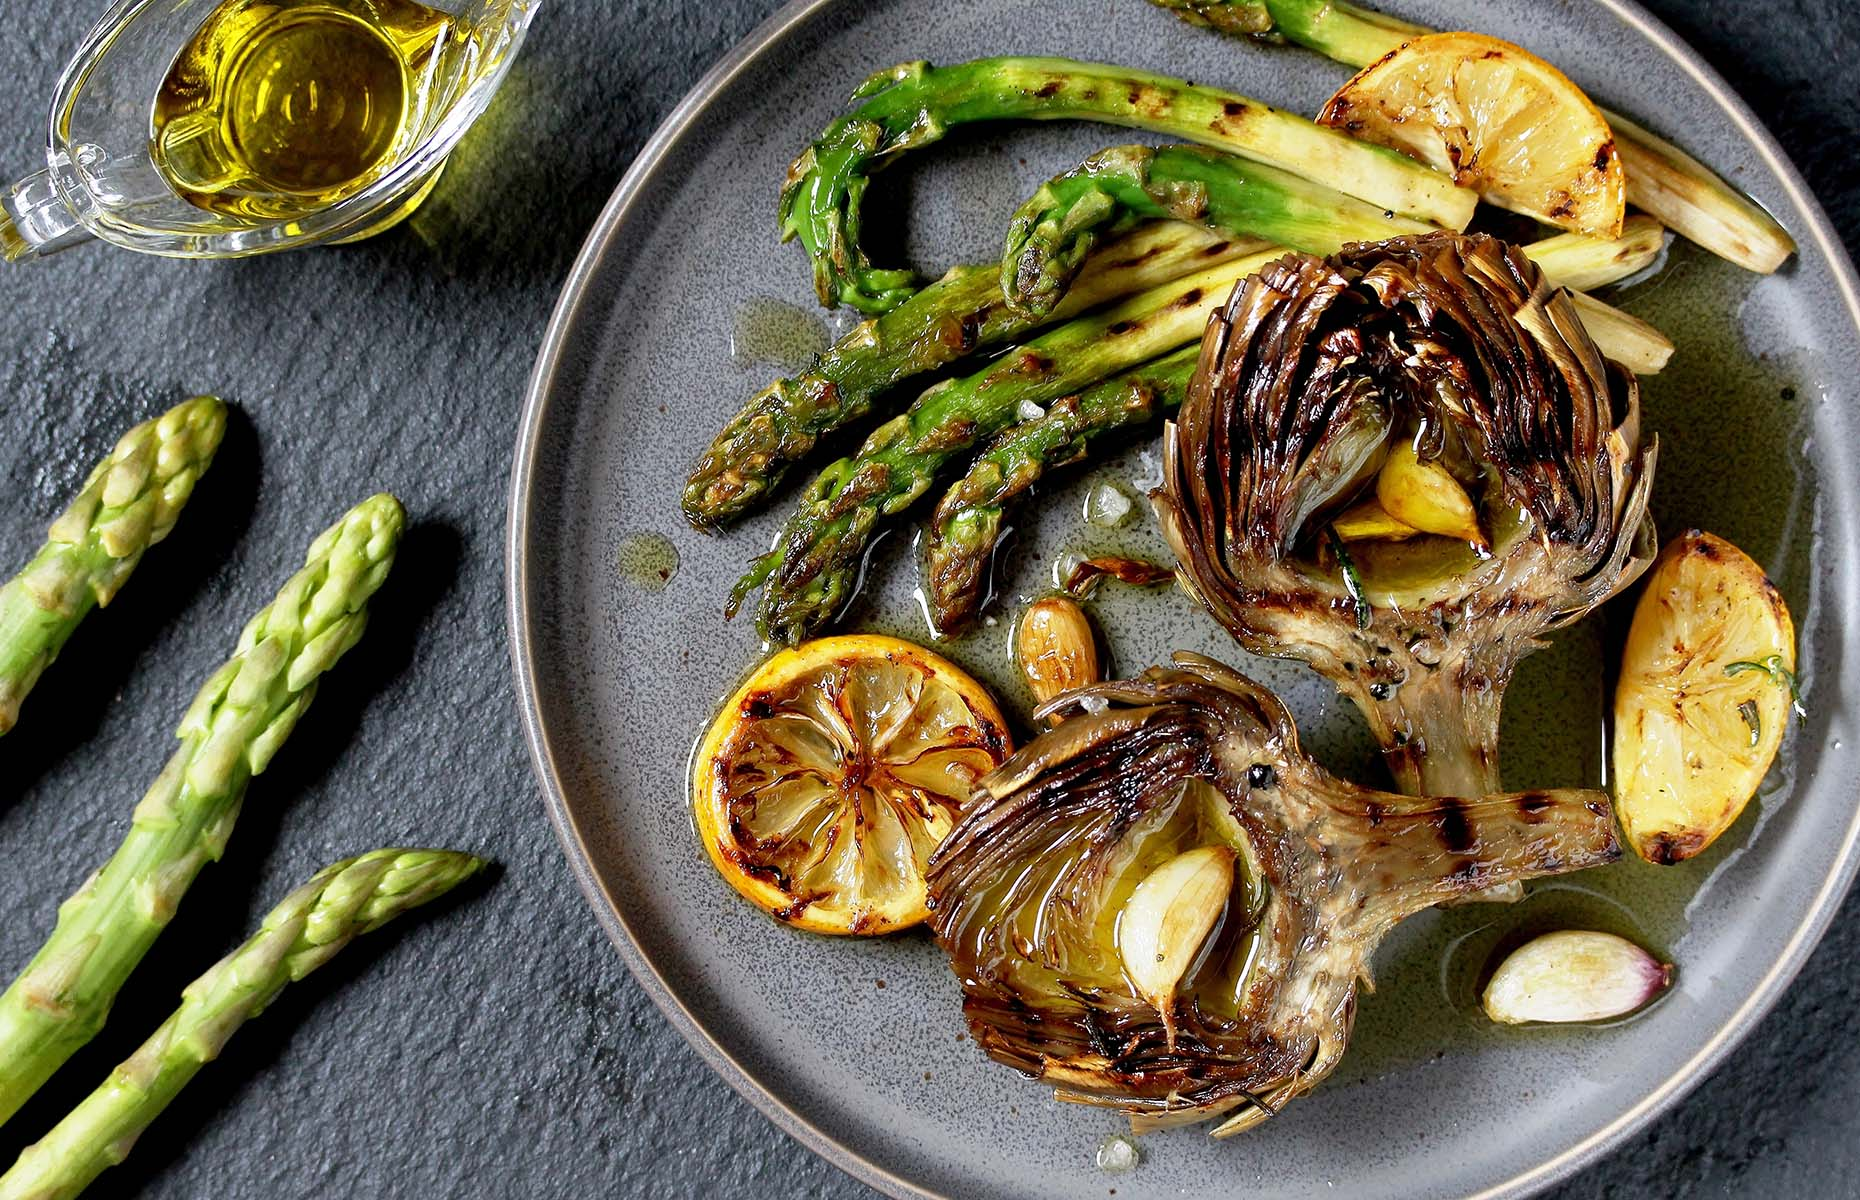 How to cook artichokes: grilled artichokes